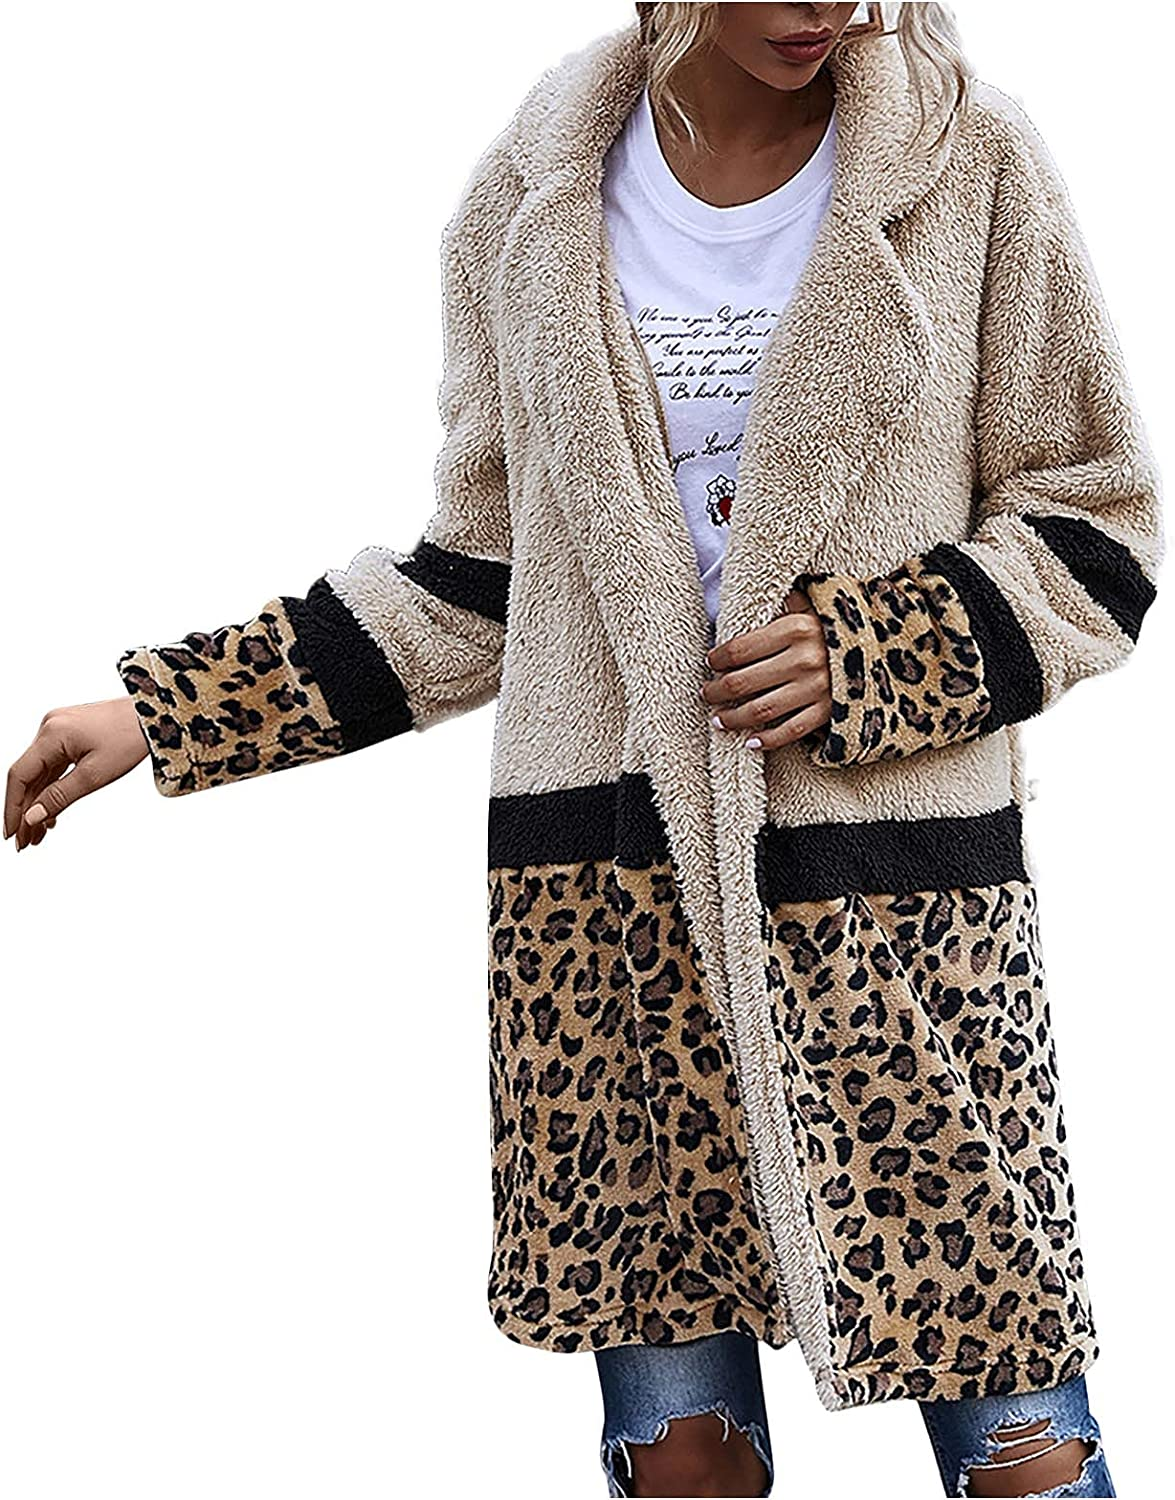 Womens Trench Coats Faux Shearling Fashion Color Block Teddy Coat Max 82% OFF Jacket